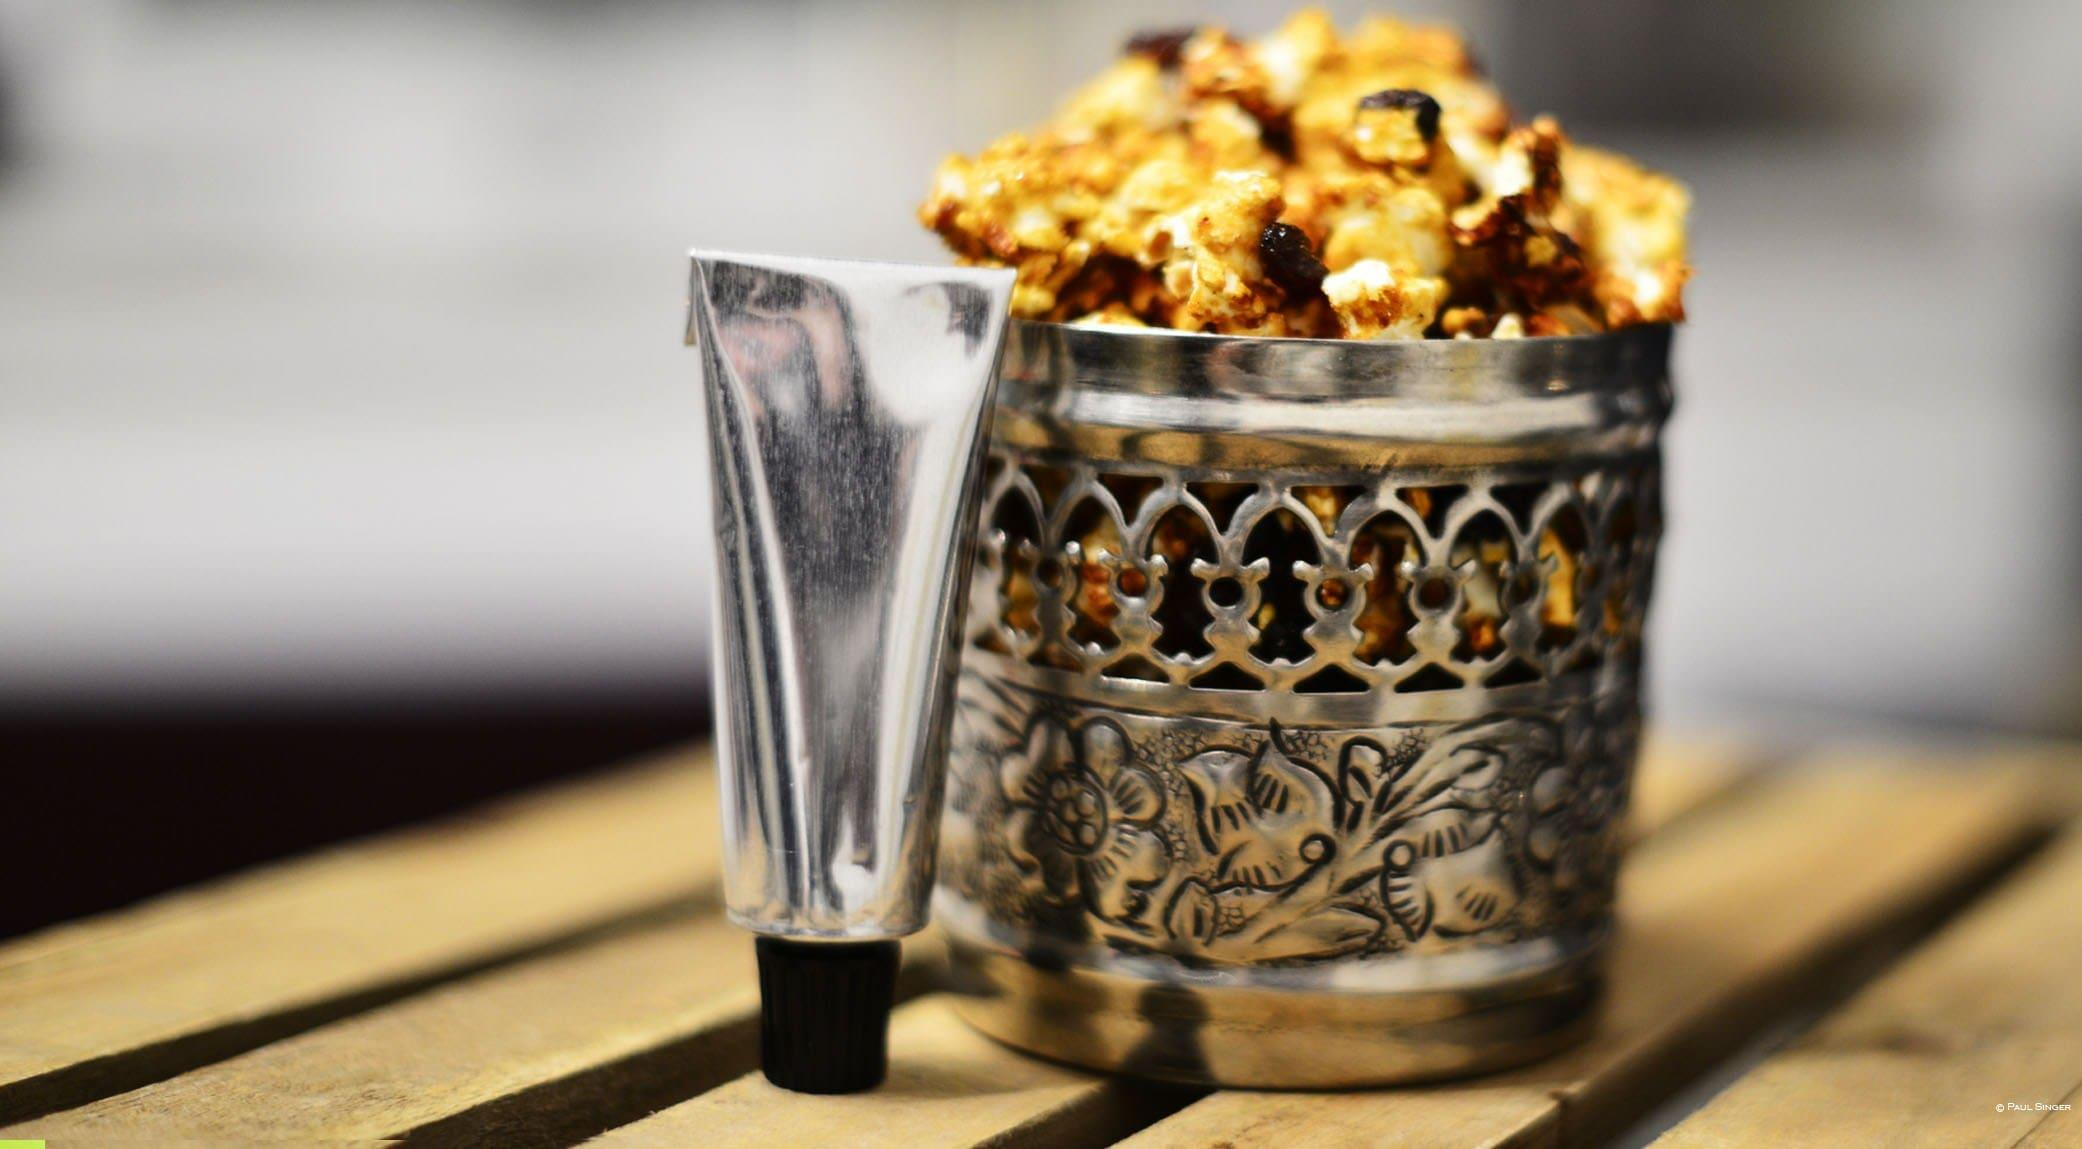 original_Mince-Pie-Popcorn-with-Pine-Syrup.jpg